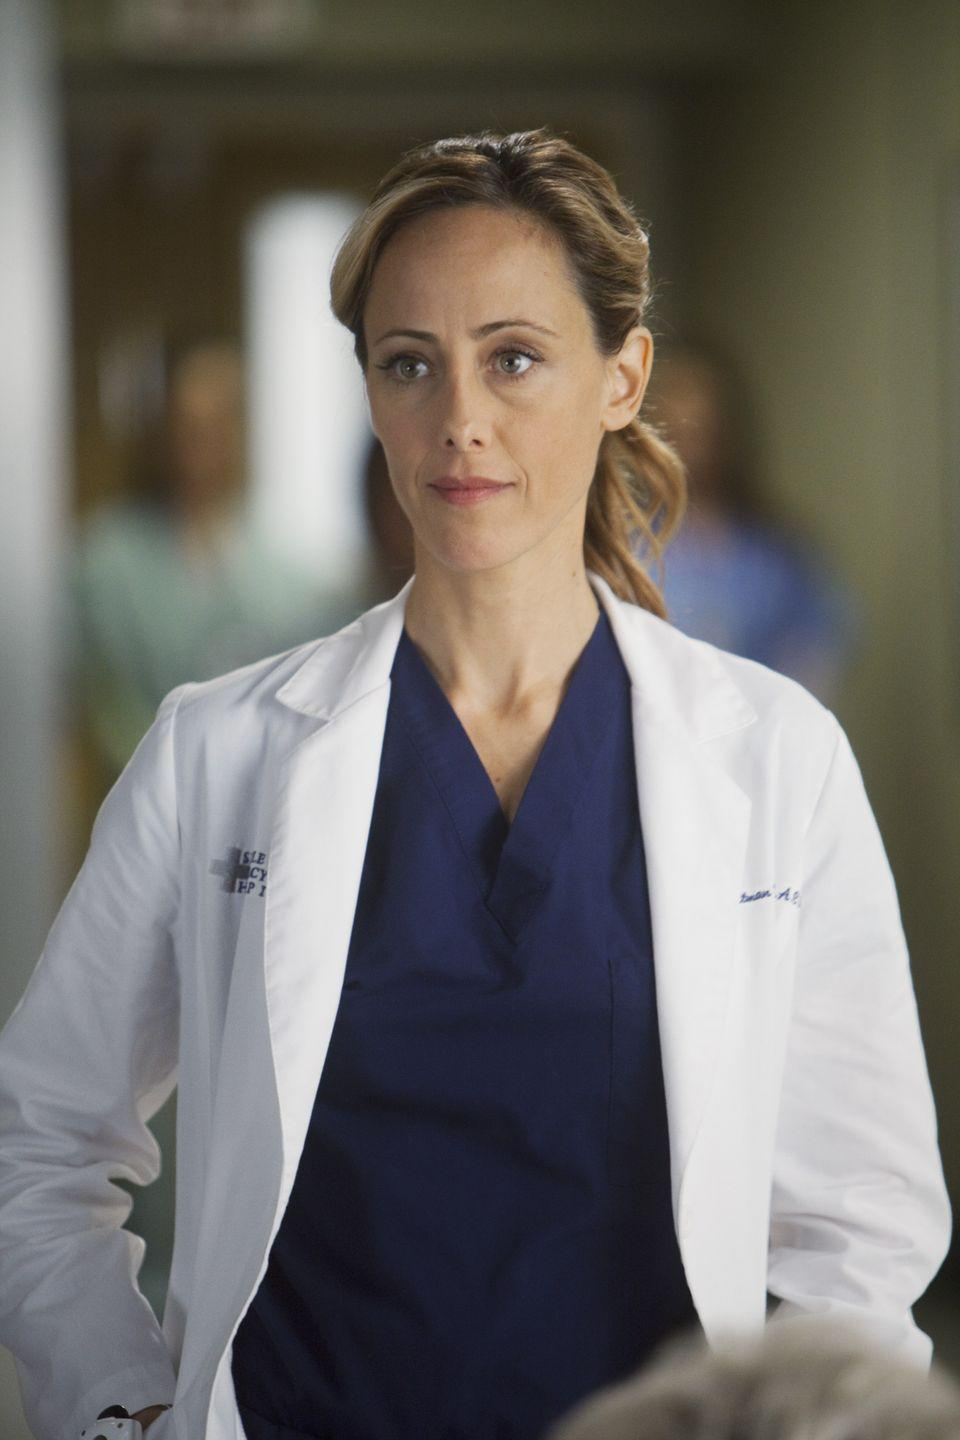 <p>Raver's character left in season 8, when Hunt fired her to force her into taking her dream job at MEDCOM. </p>